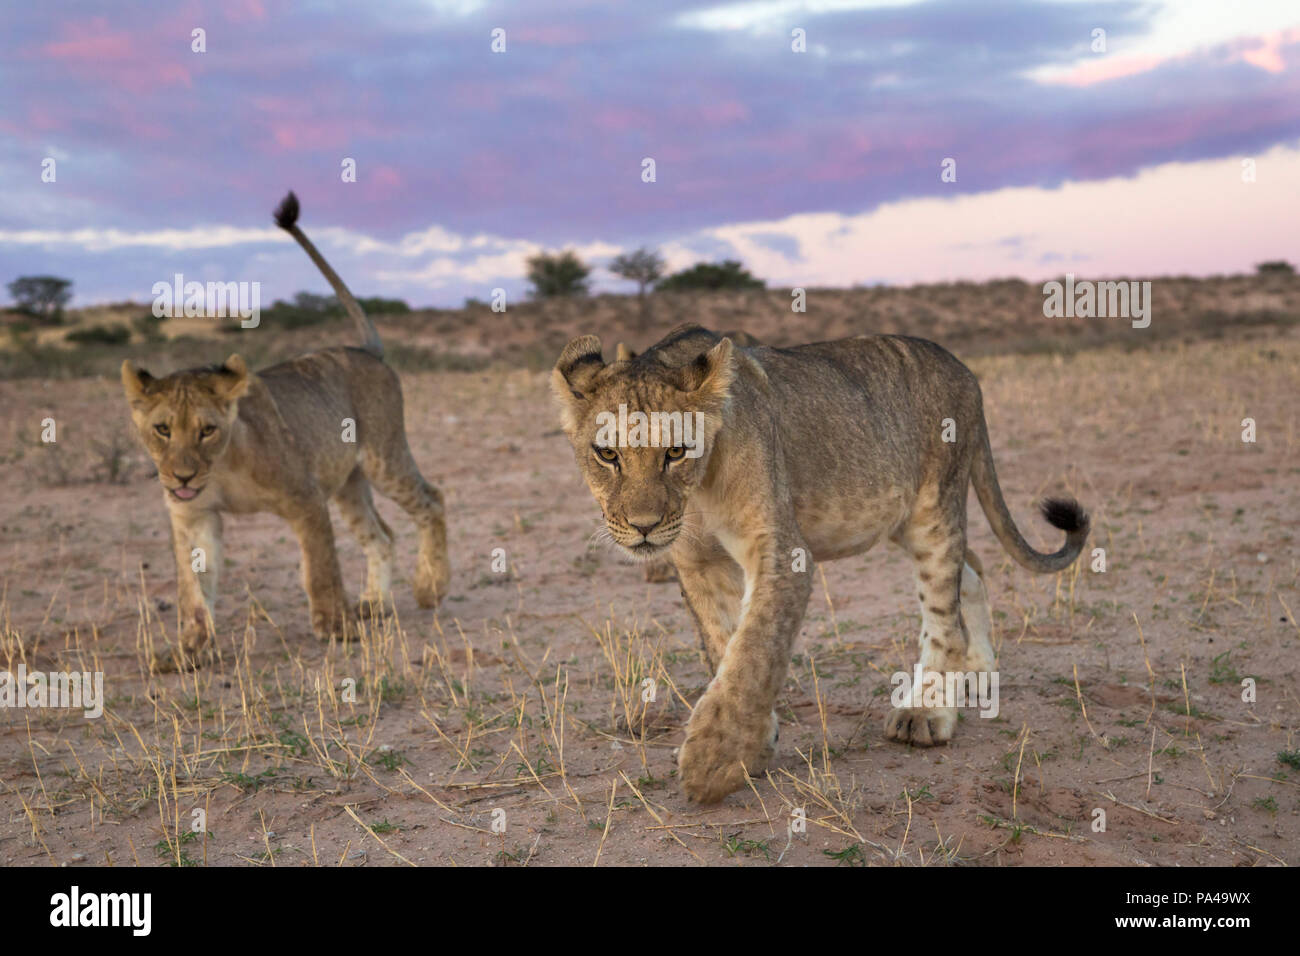 Young lions (Panthera leo), Kgalagadi Transfrontier Park, South Africa, - Stock Image